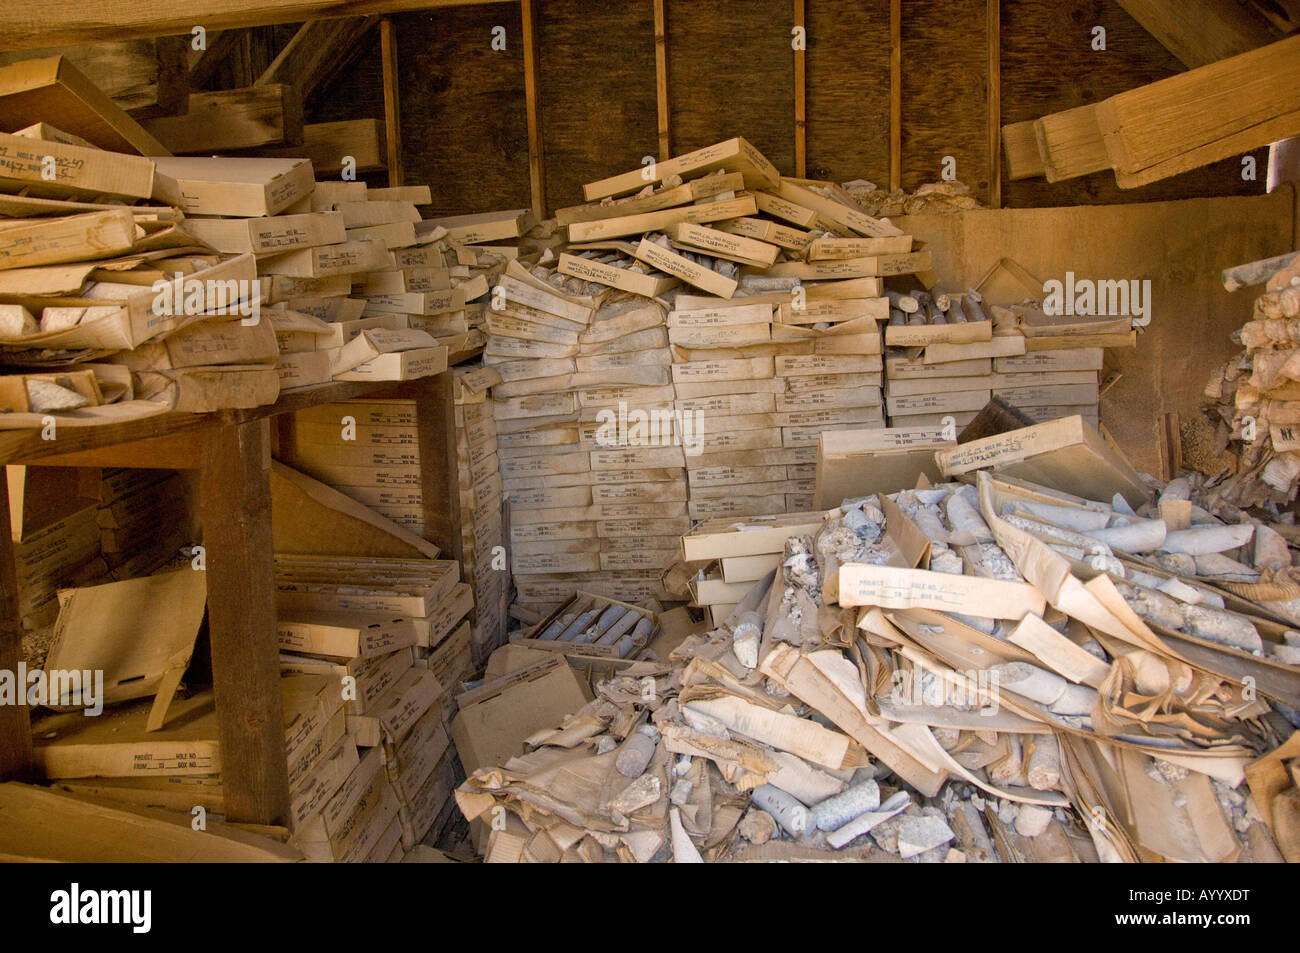 Boxes of core samples from a mining operation - Stock Image